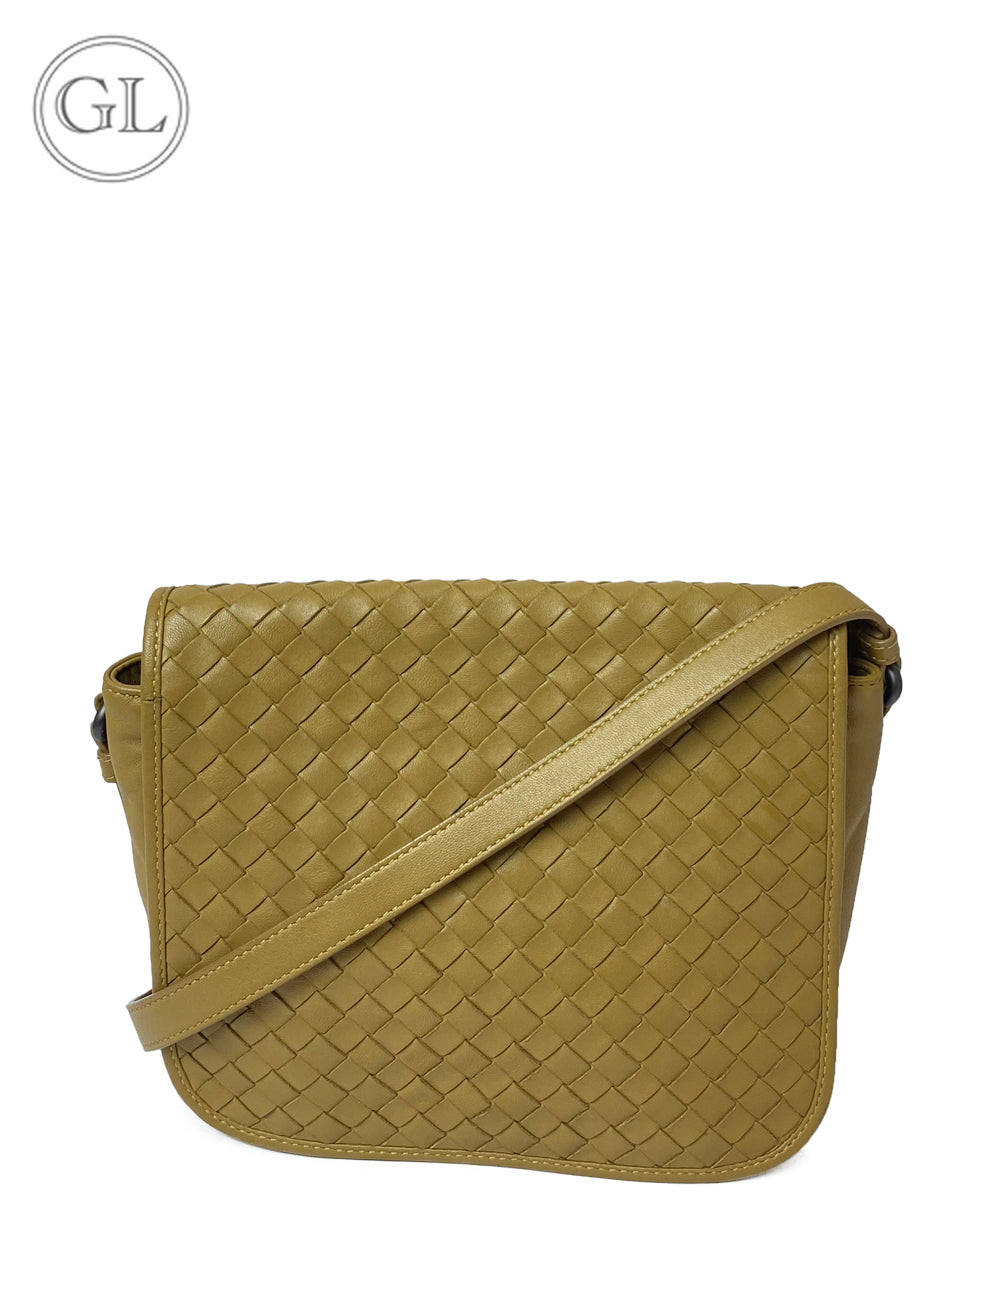 Buy online Bottega Veneta Black Leather Intricciato